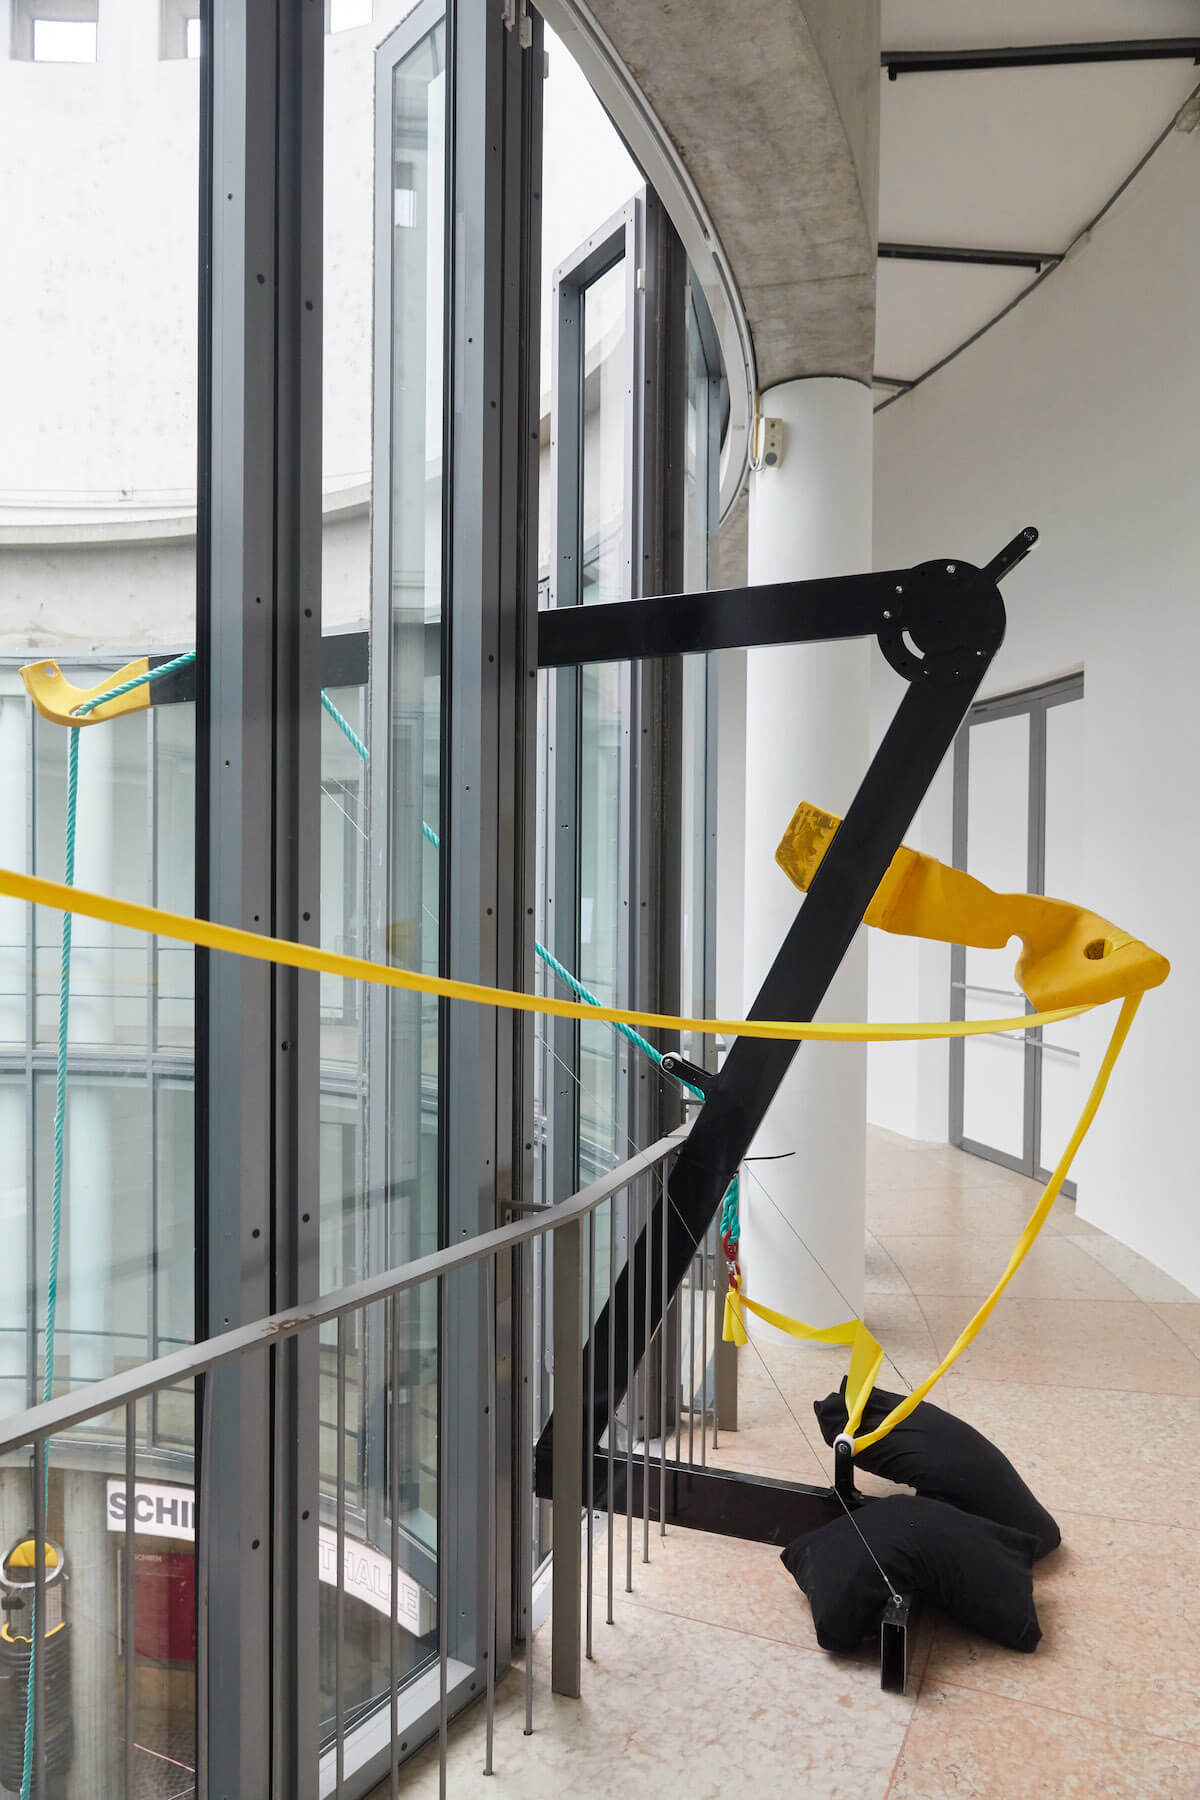 Schirn_Neil_Beloufa_Global_Agreement_Installation_View_Foto_Marc_Krause_29